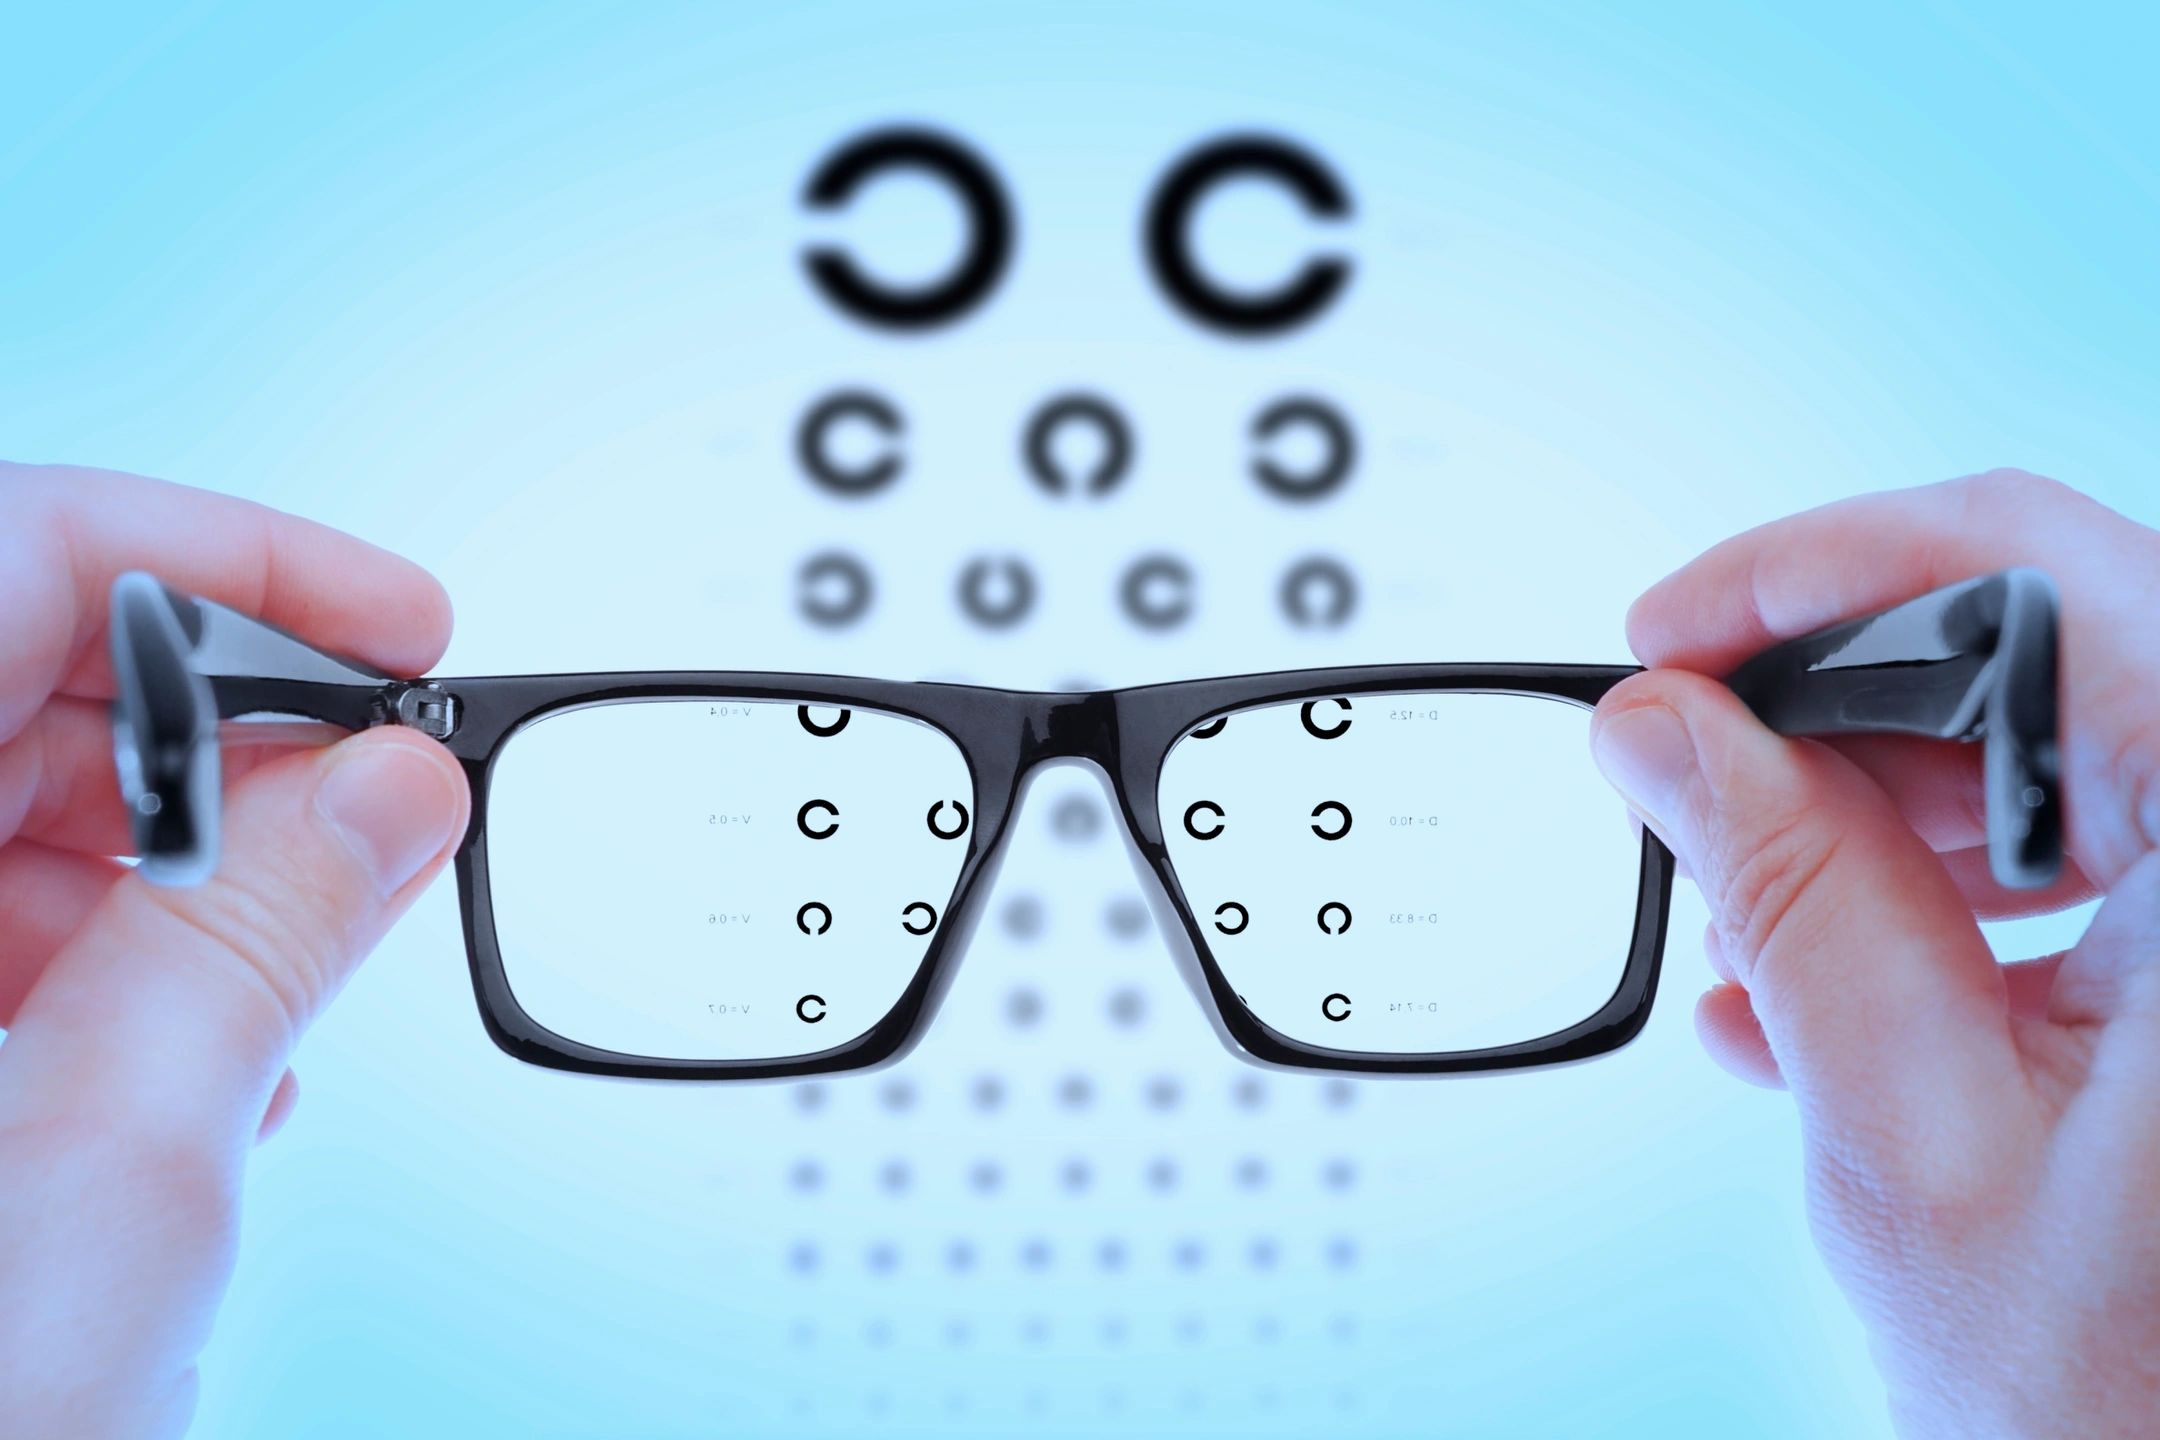 Where to Find Affordable Prescription Glasses That Don't Compromise Style